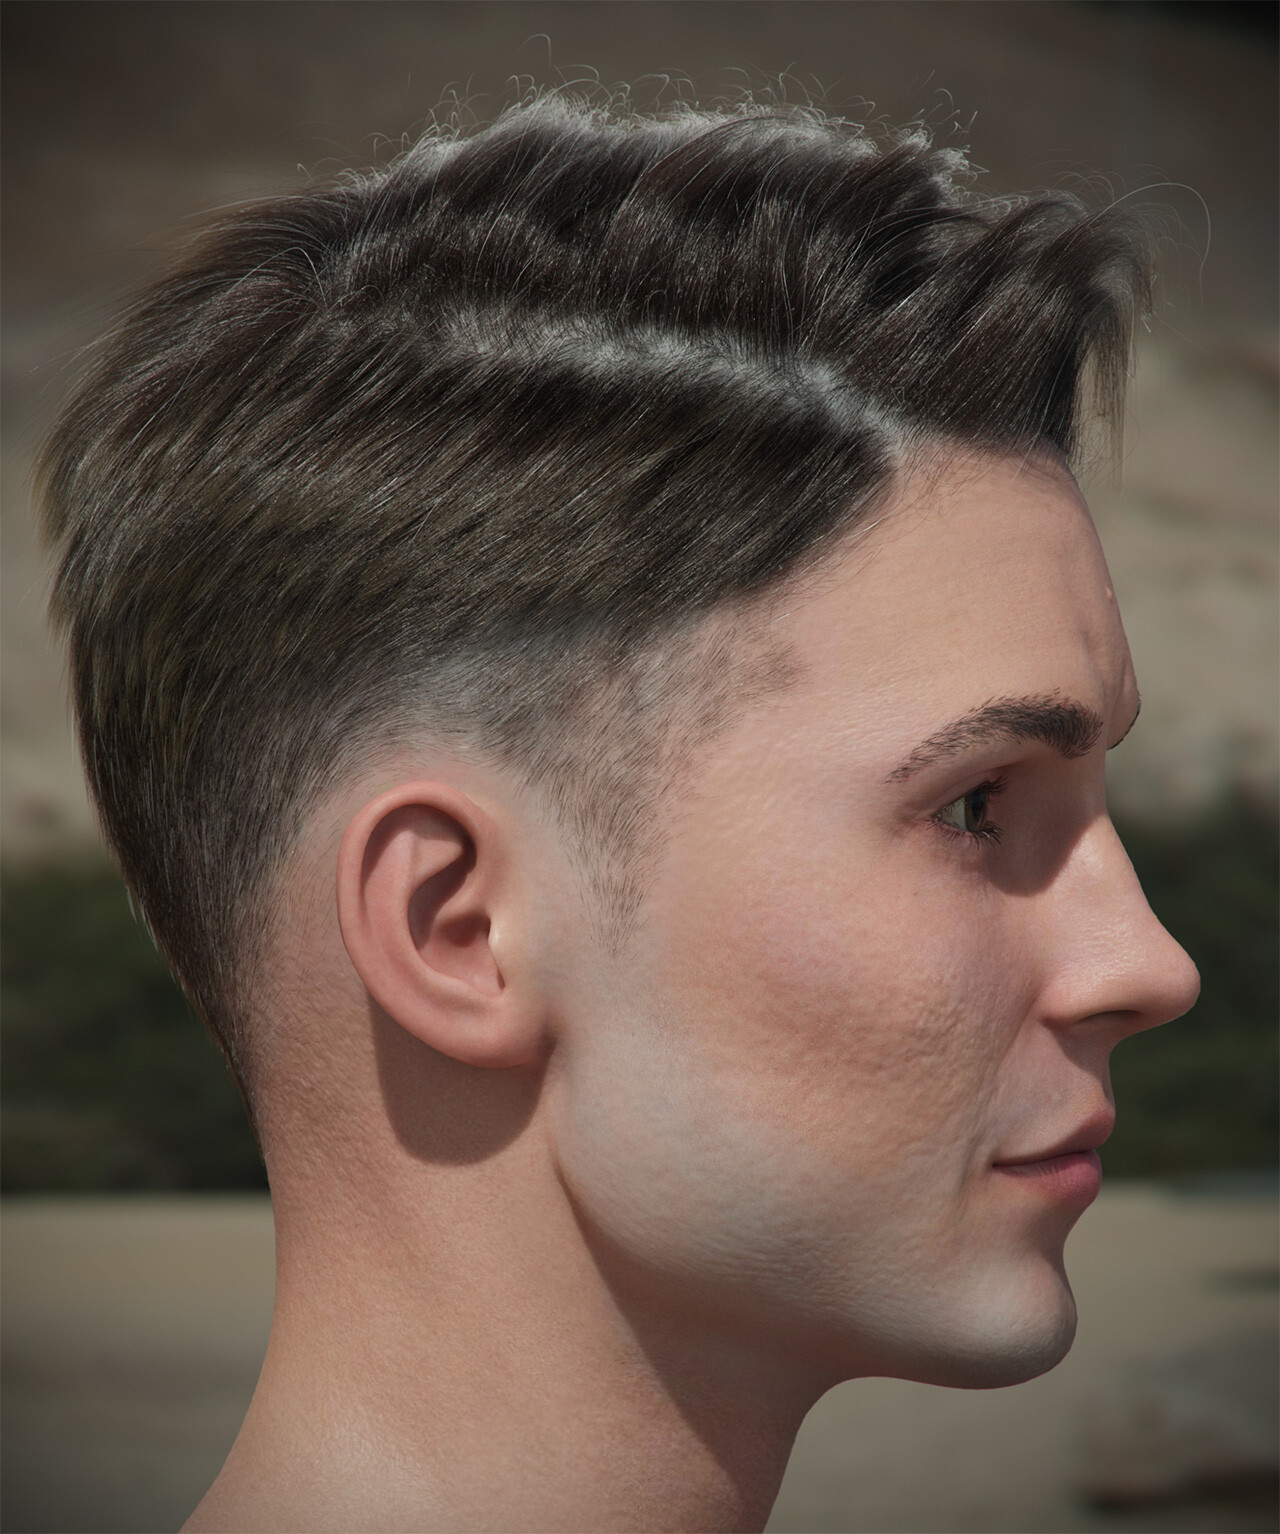 Andrew krivulya genry haircut 1 by akcharly cam05